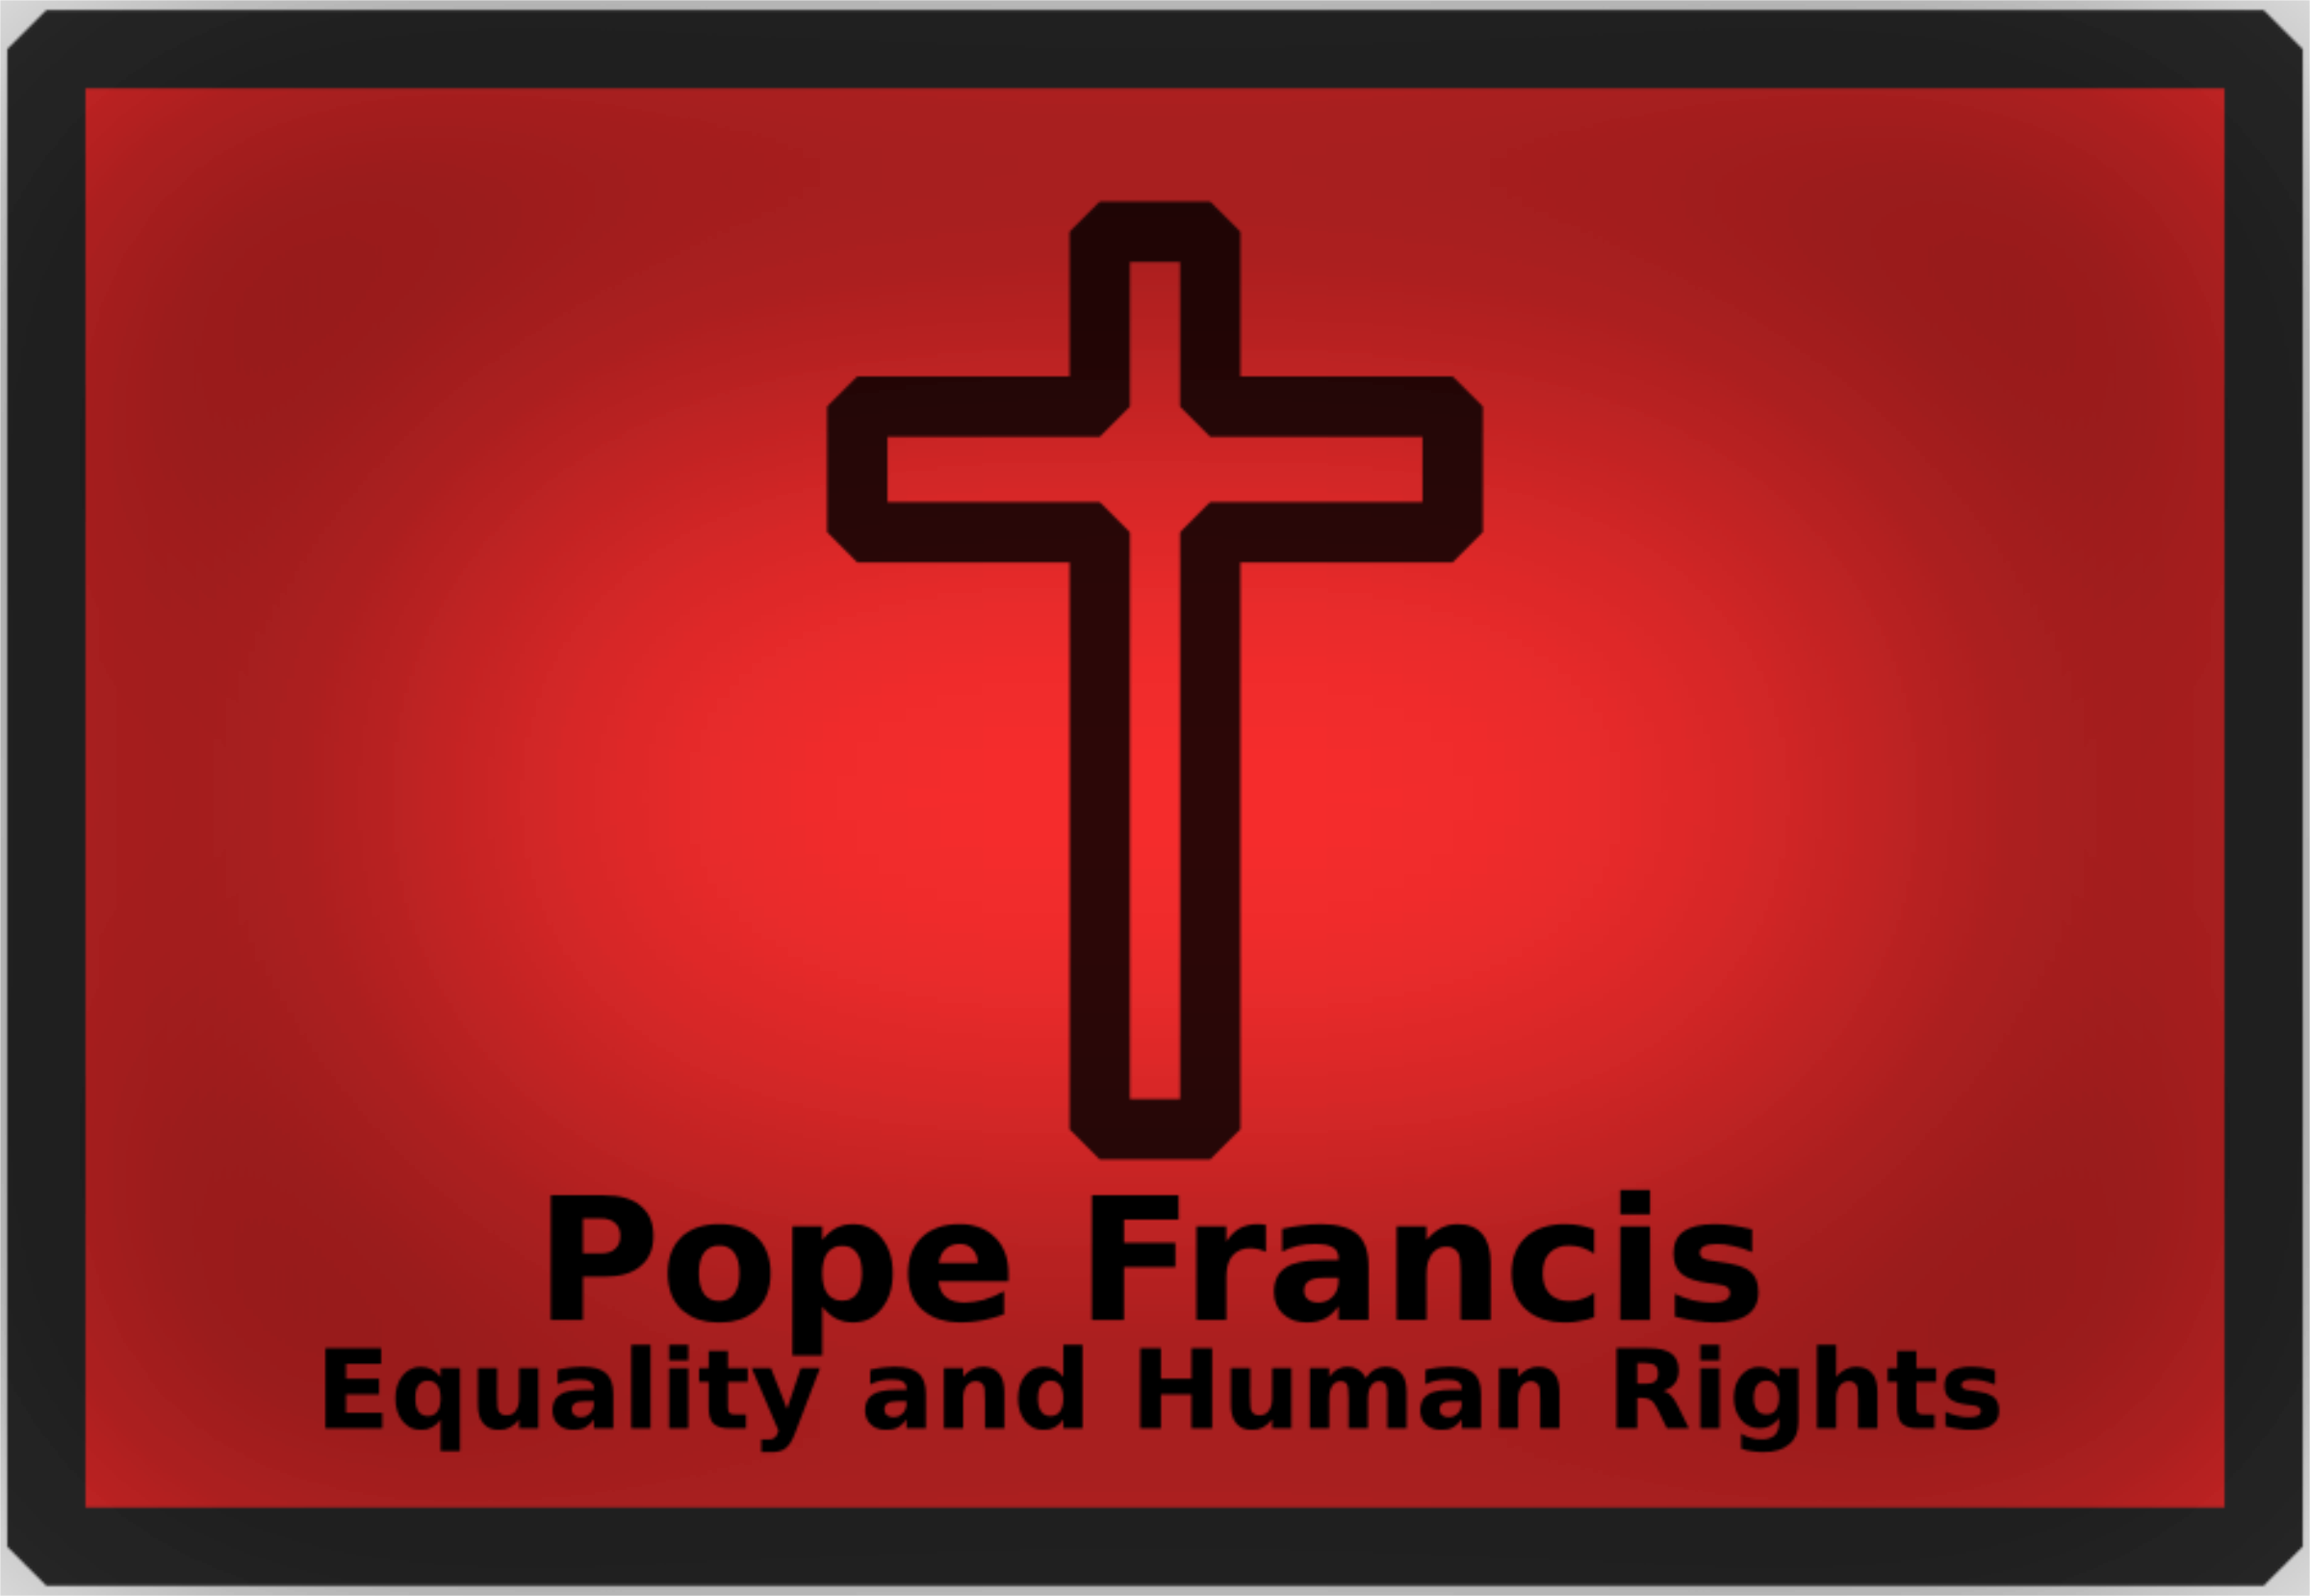 Poverty clipart human right. Pope francis big image